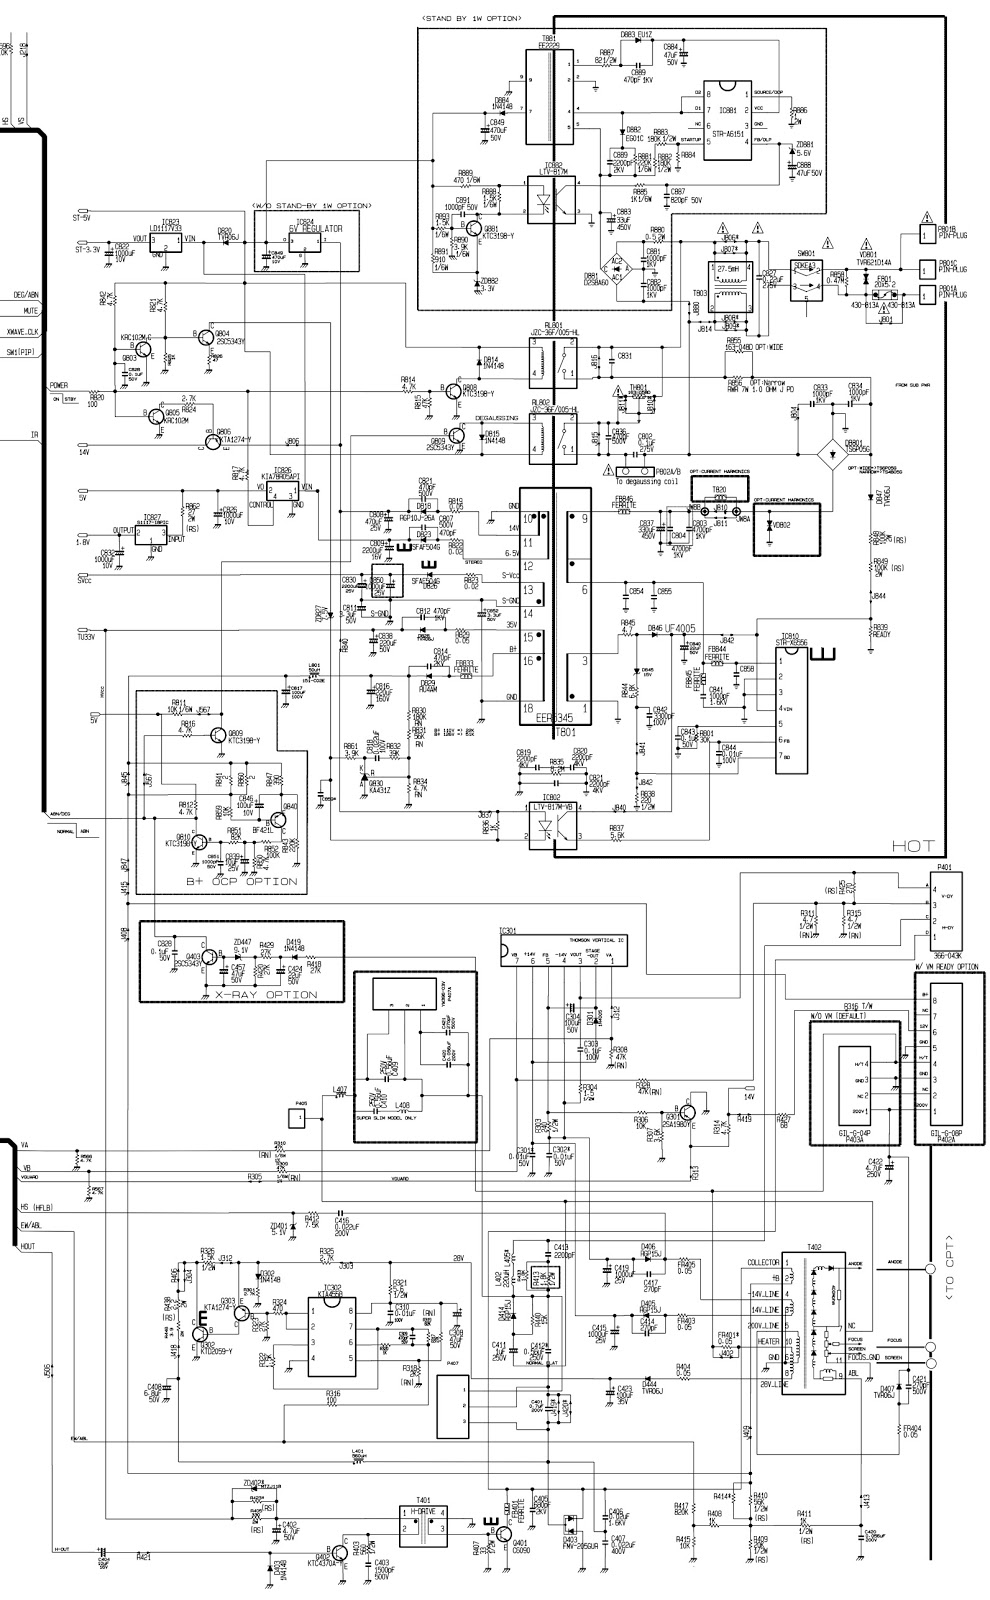 manguonblog: STR-X6556 based SMPS power supply circuit